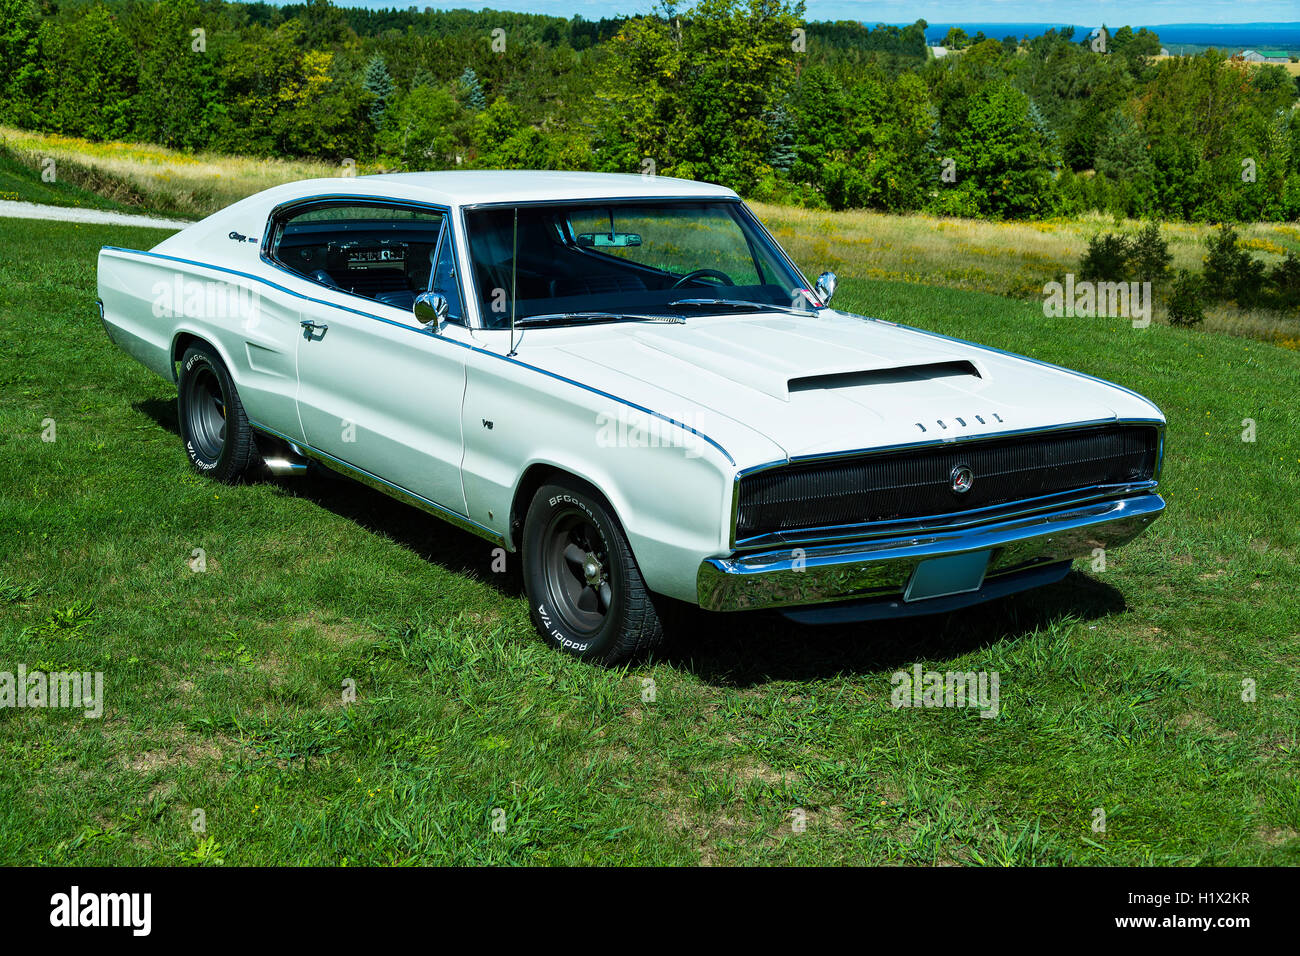 1966 Dodge Charger - Stock Image